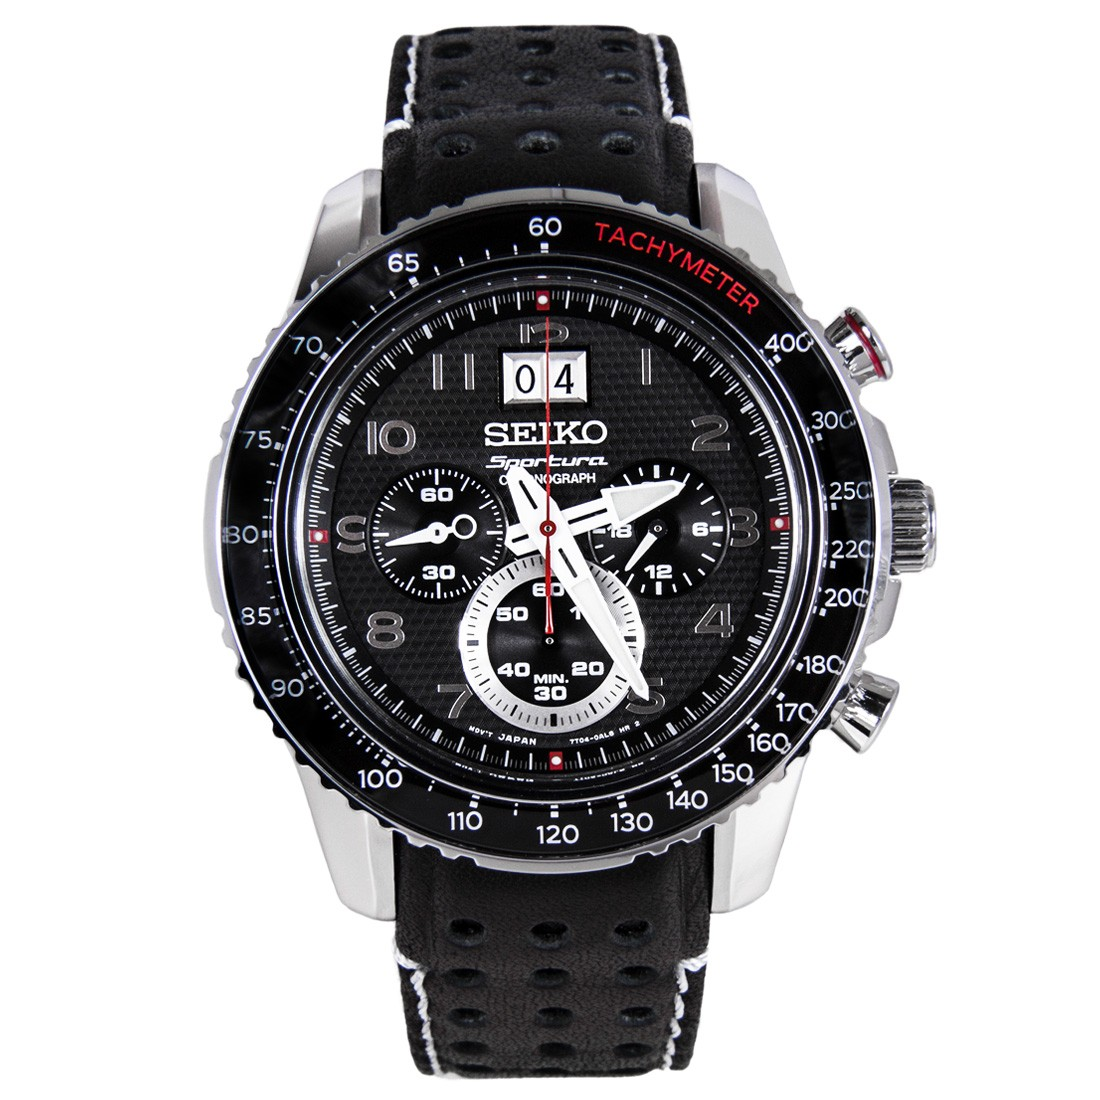 Seiko Chronograph Watch SPC139P1